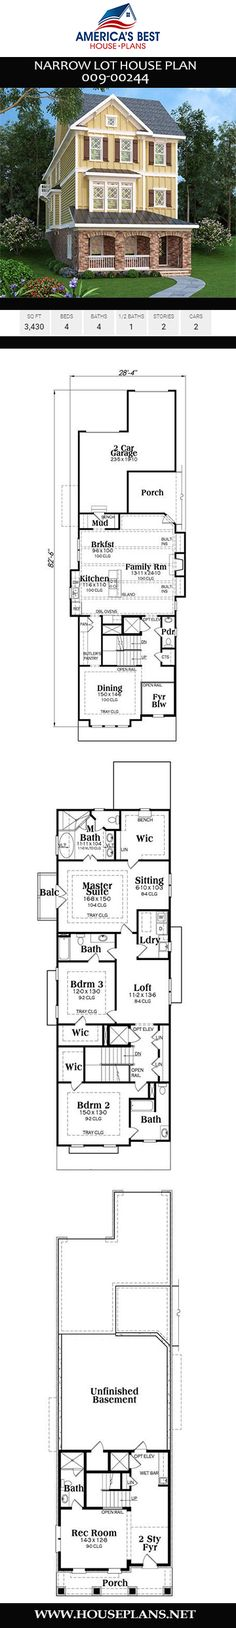 82 Best Narrow Lot House Plans images in 2019 | House plans ... Narrow Lot House Plans Elevator on old new orleans house plans, open small house plans, craftsman house plans, european house plans, luxury house plans, bungalow house plans, seaside house plans, simple house plans, townhouse house plans, southwest house plans, 25' wide house plans, country house plans, one story house plans, cottage house plans, traditional house plans, energy efficient house plans, mediterranean house plans, colonial house plans, charleston house plans,